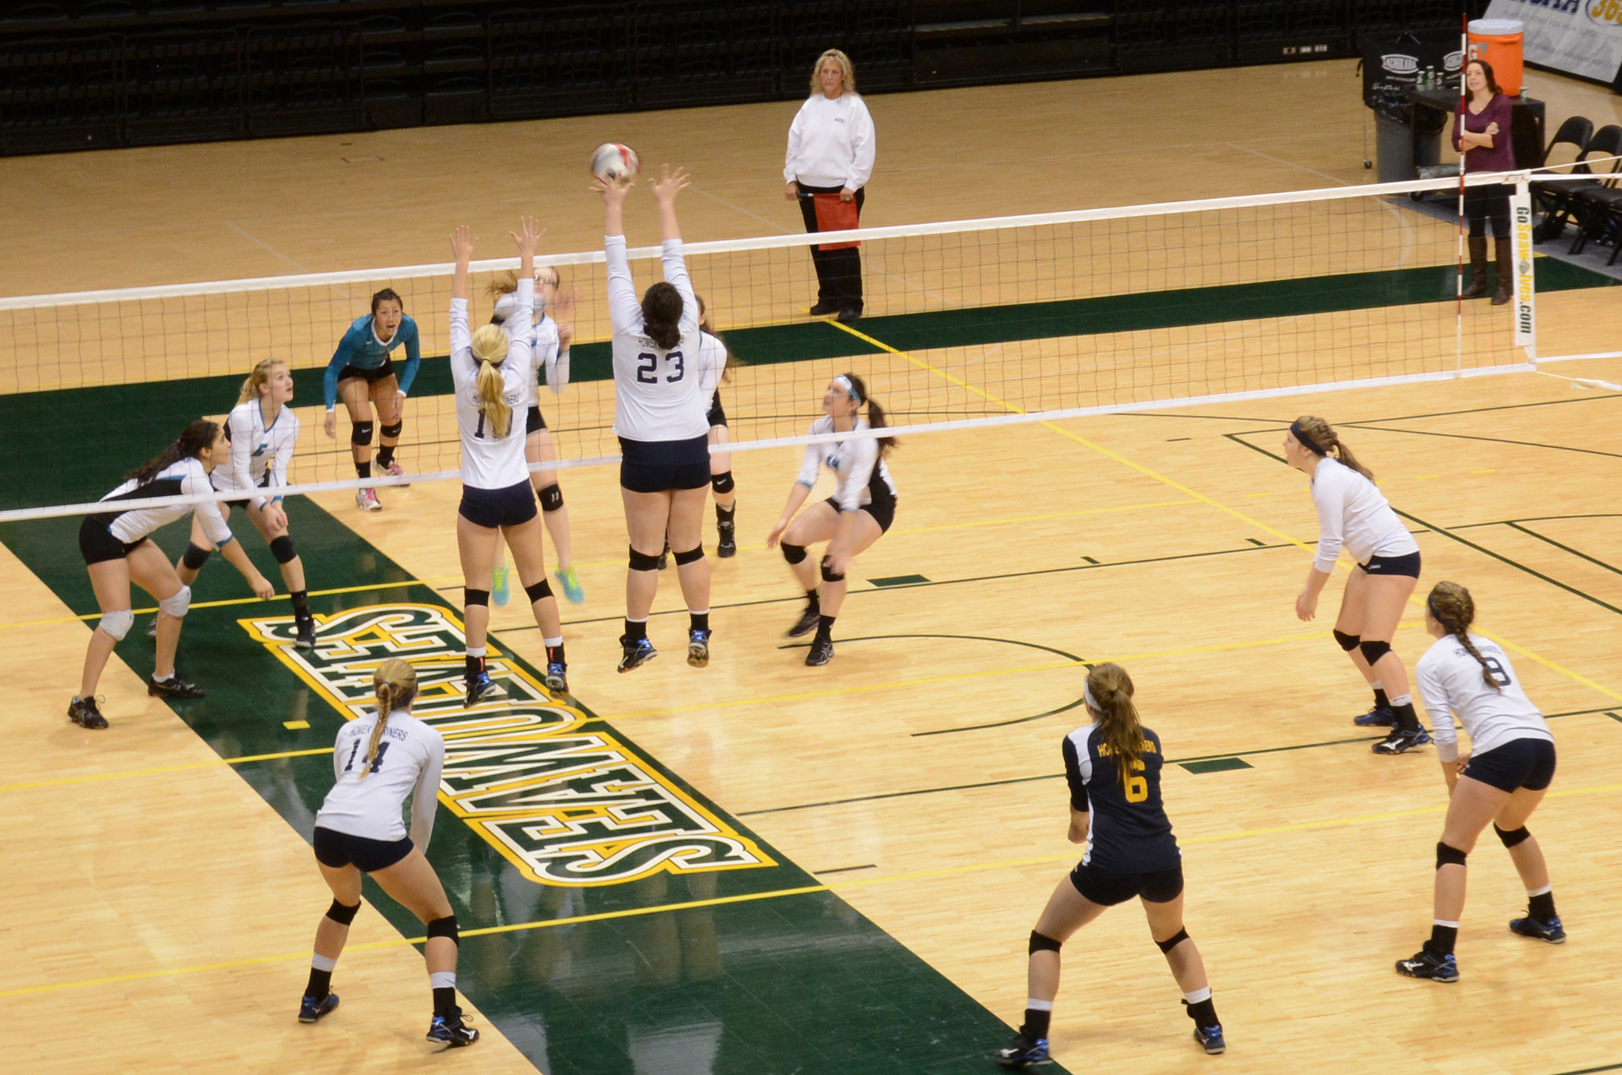 The Mariners hold a tough defense as Kyla Pitzman (23) and Jane Rohr (10) jump to block Nikiski in Match 9 of the tournament at the Alaska Airlines Center. Pitzman and Rohr were both named to the 2014 State All-Tournament team.-Photo by Stephanie Pitzman